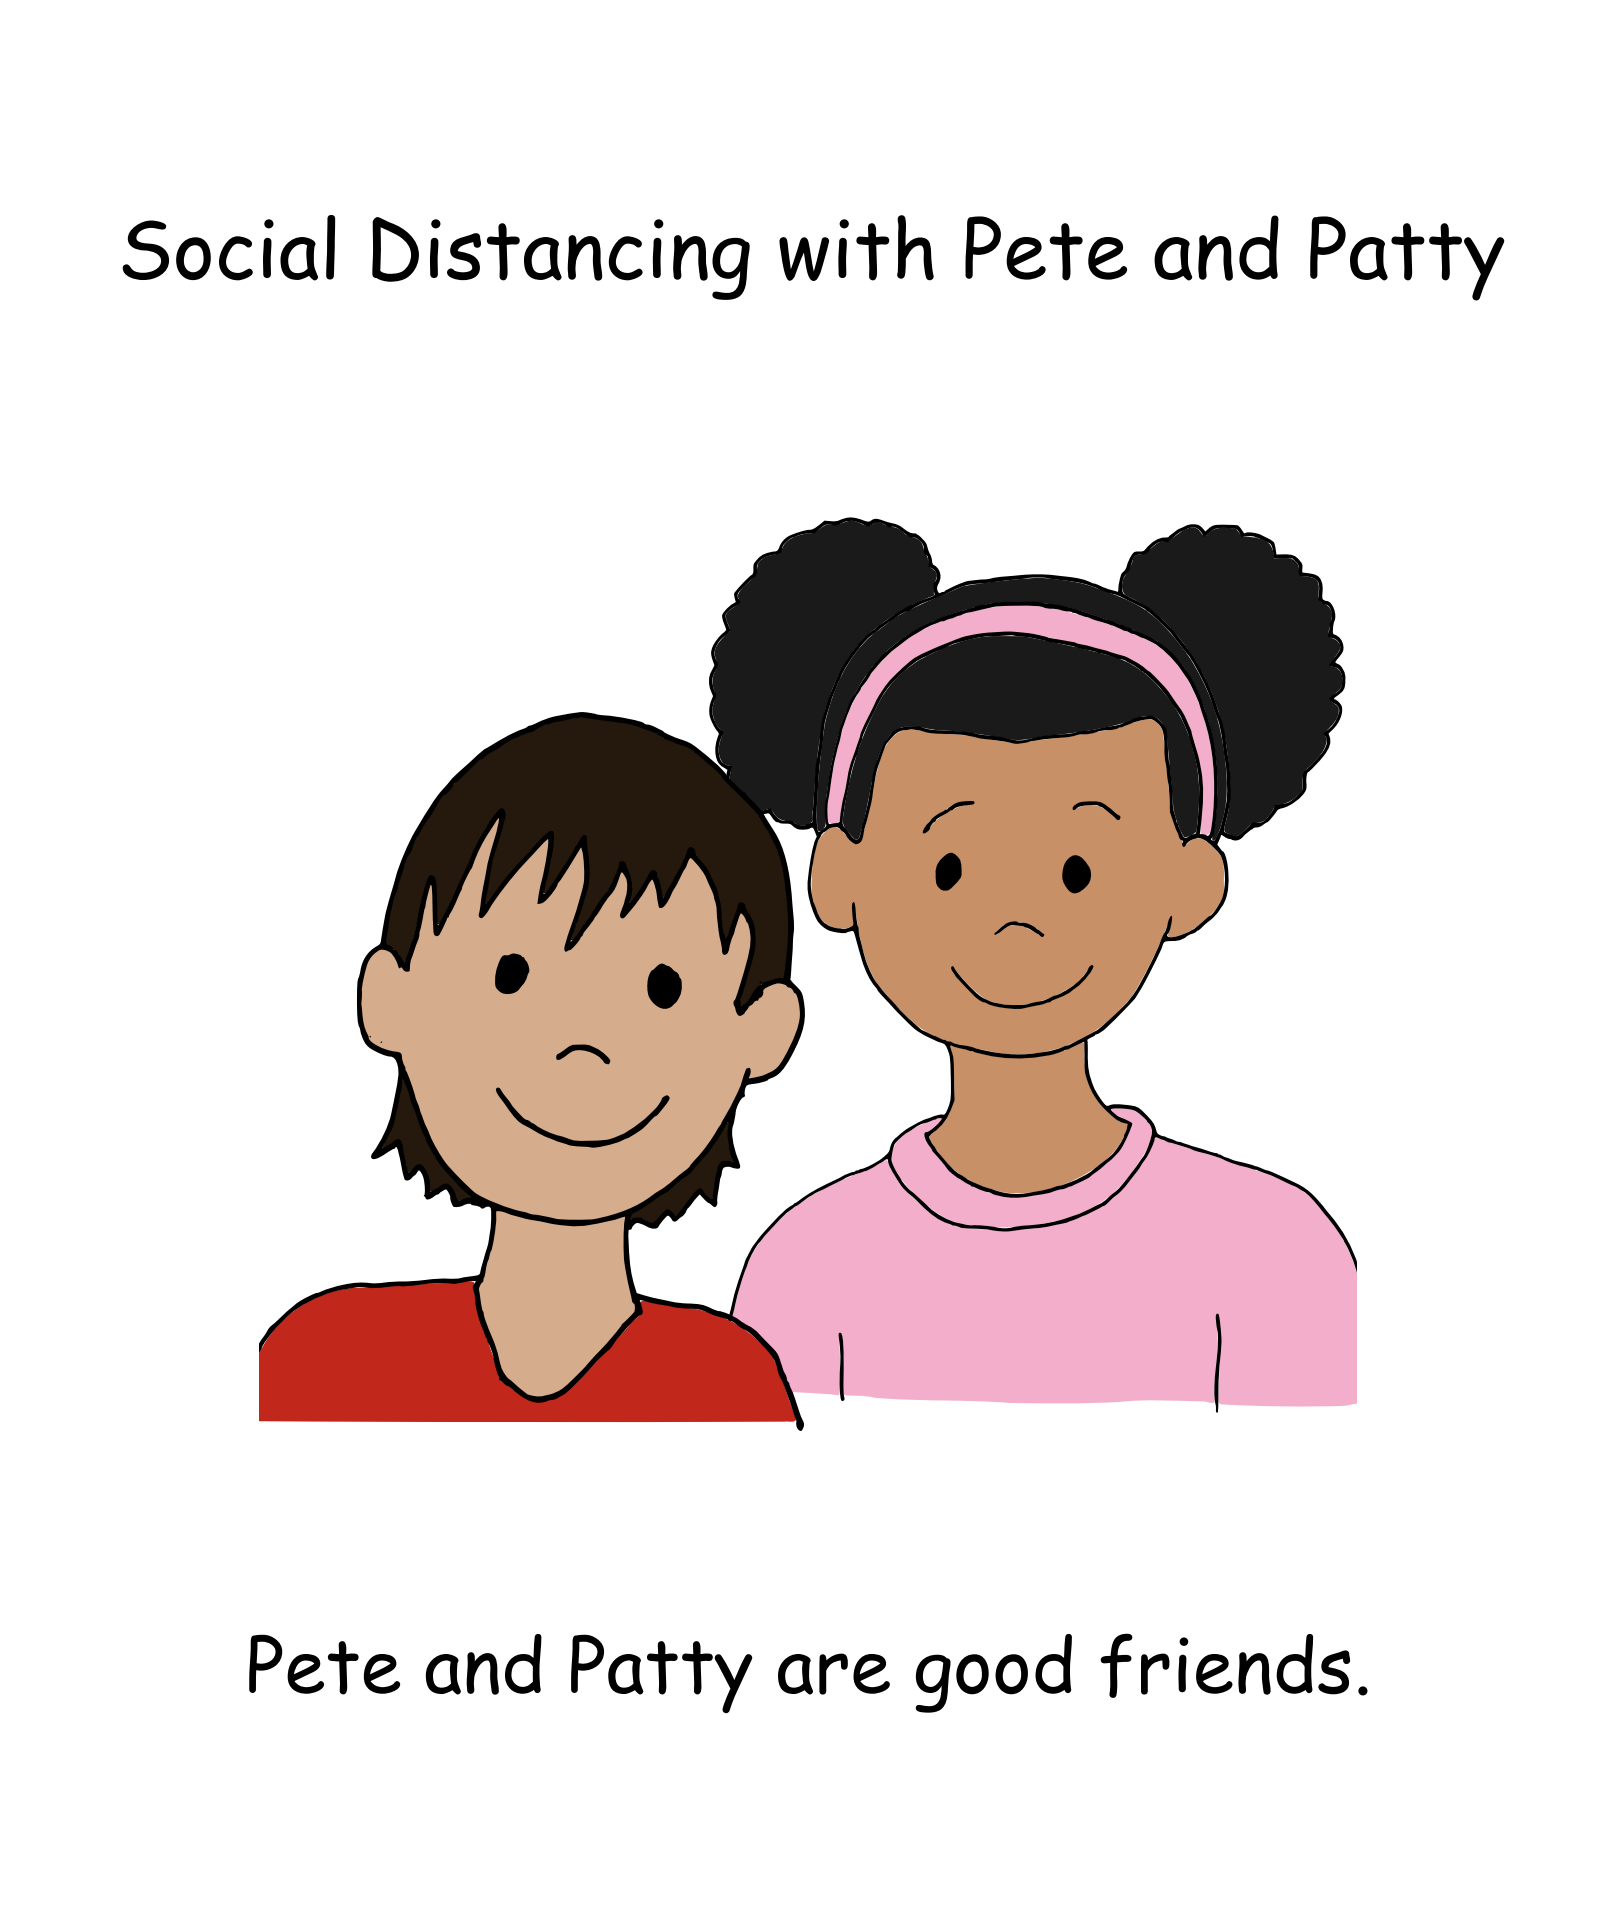 Social Distancing with Pete and Patty